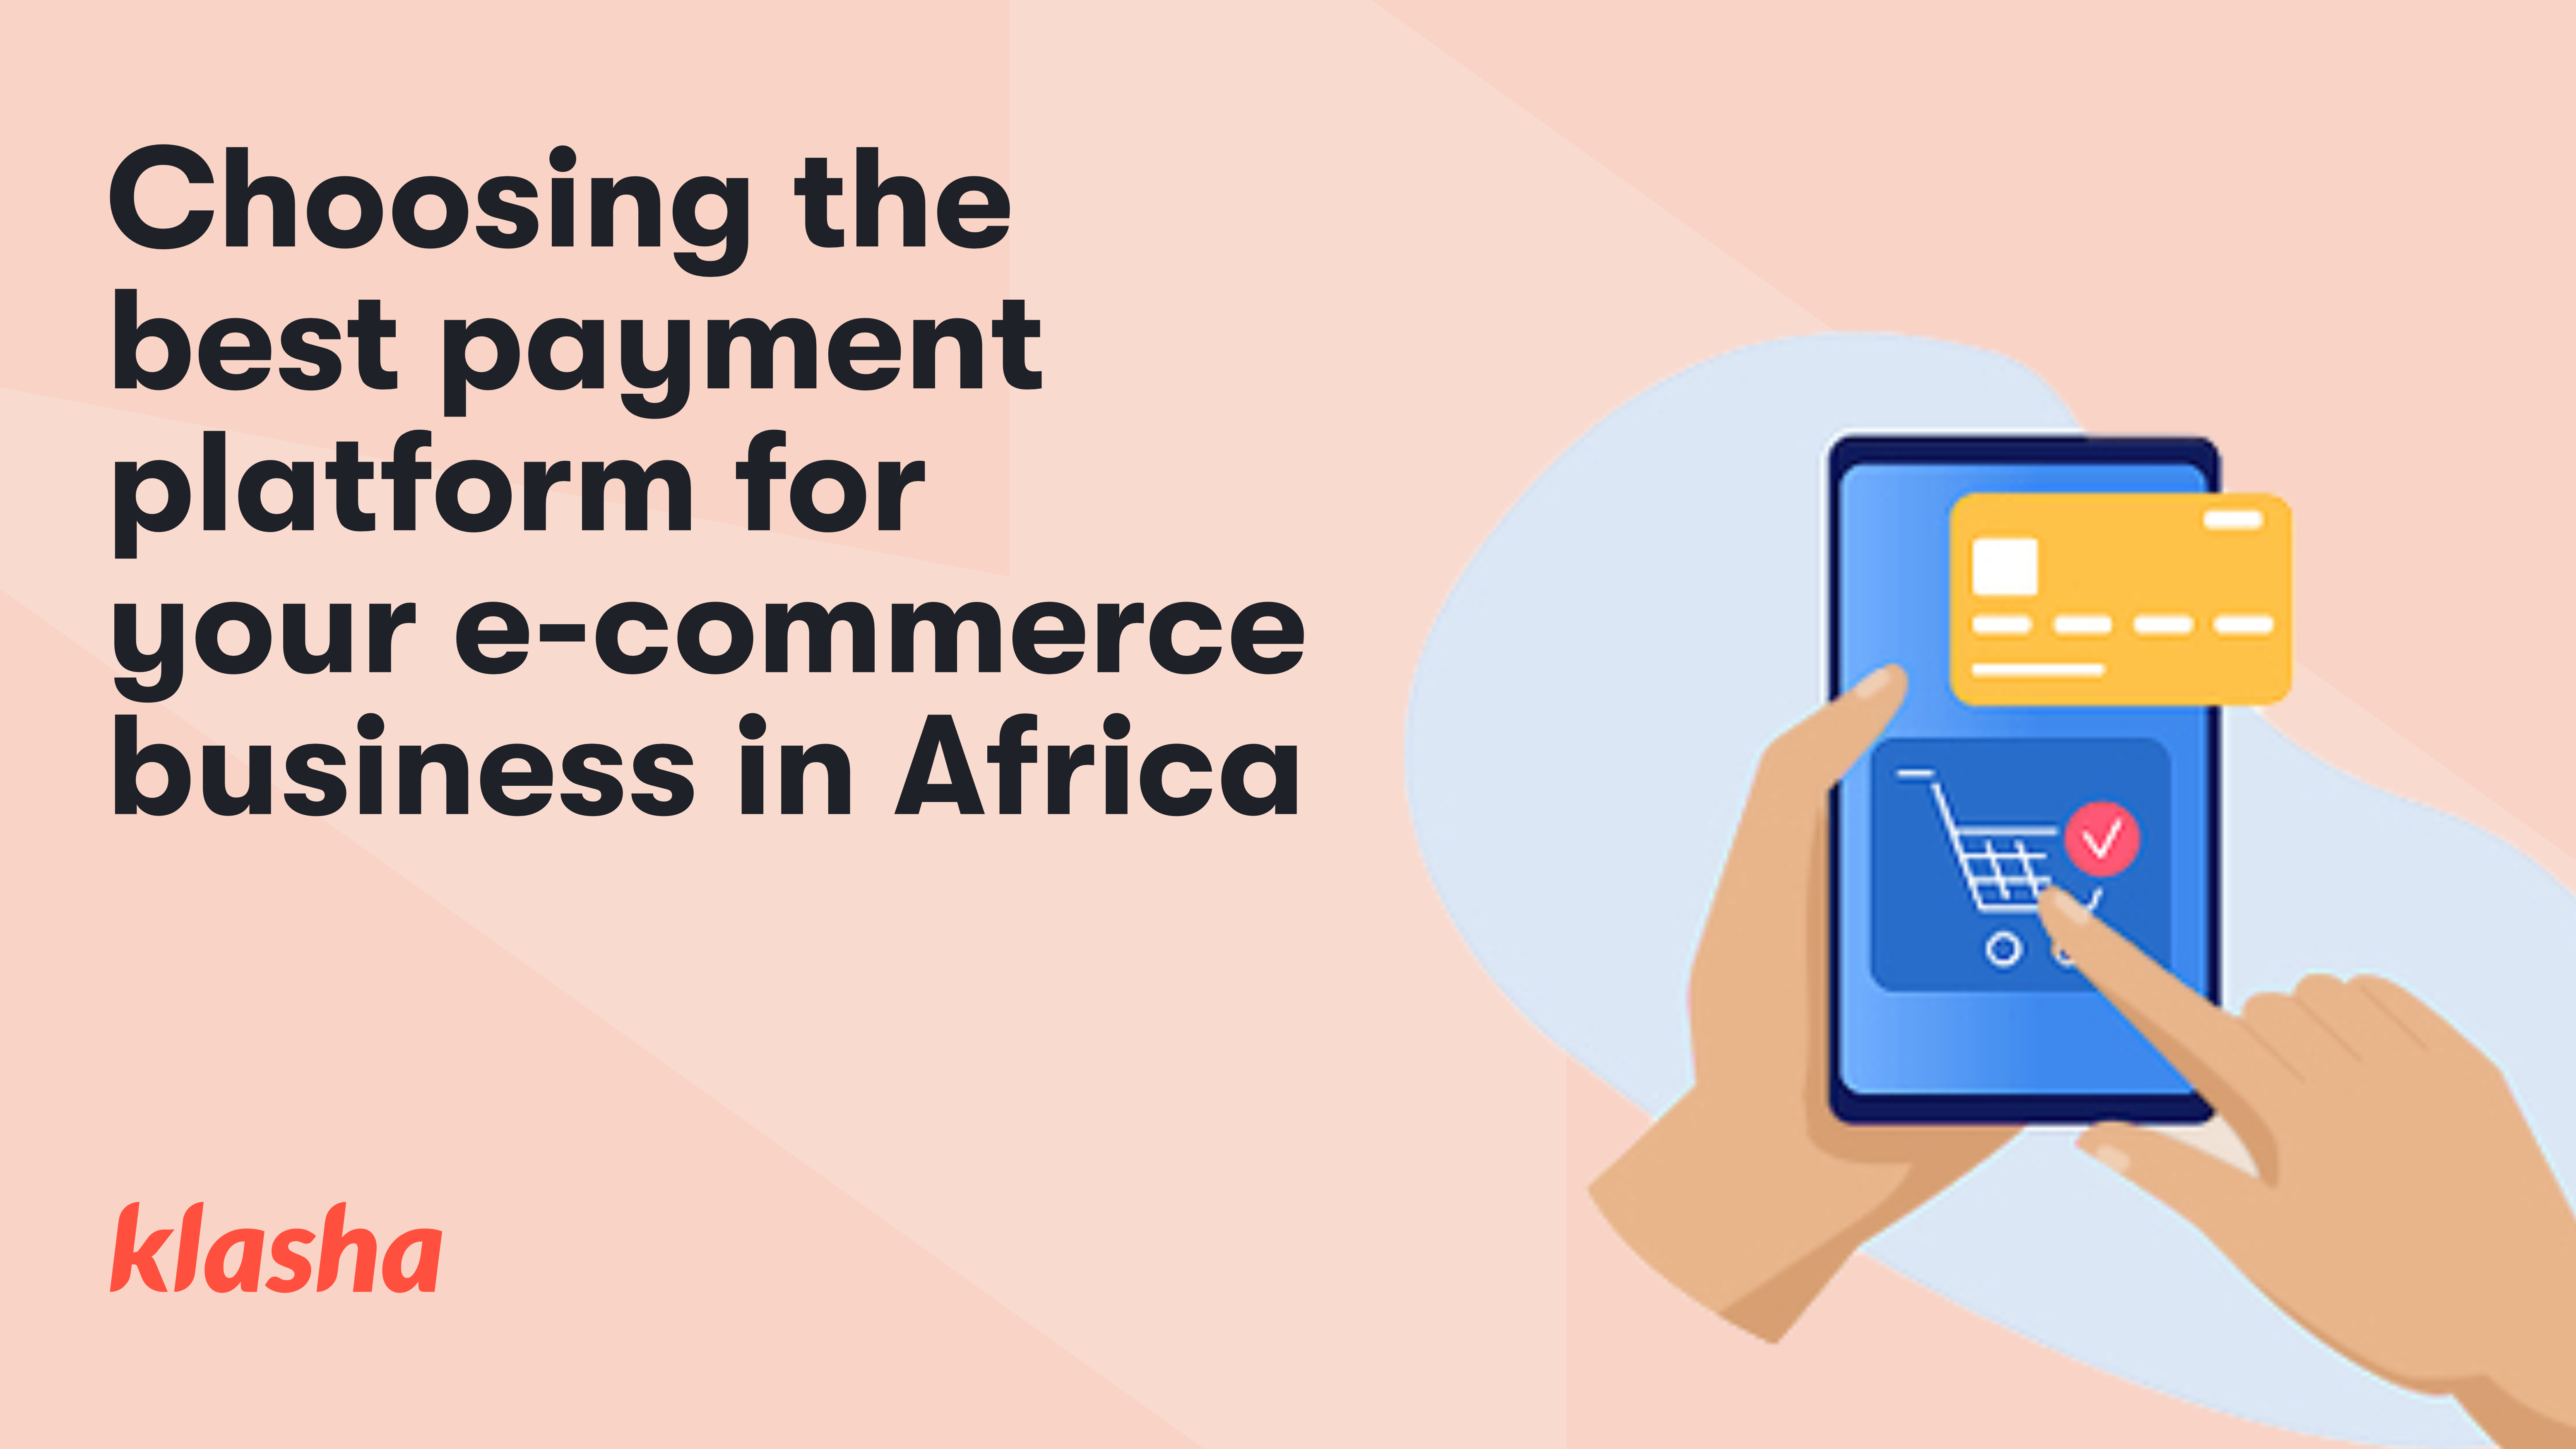 Choosing the best payment platform for your e-commerce business in Africa